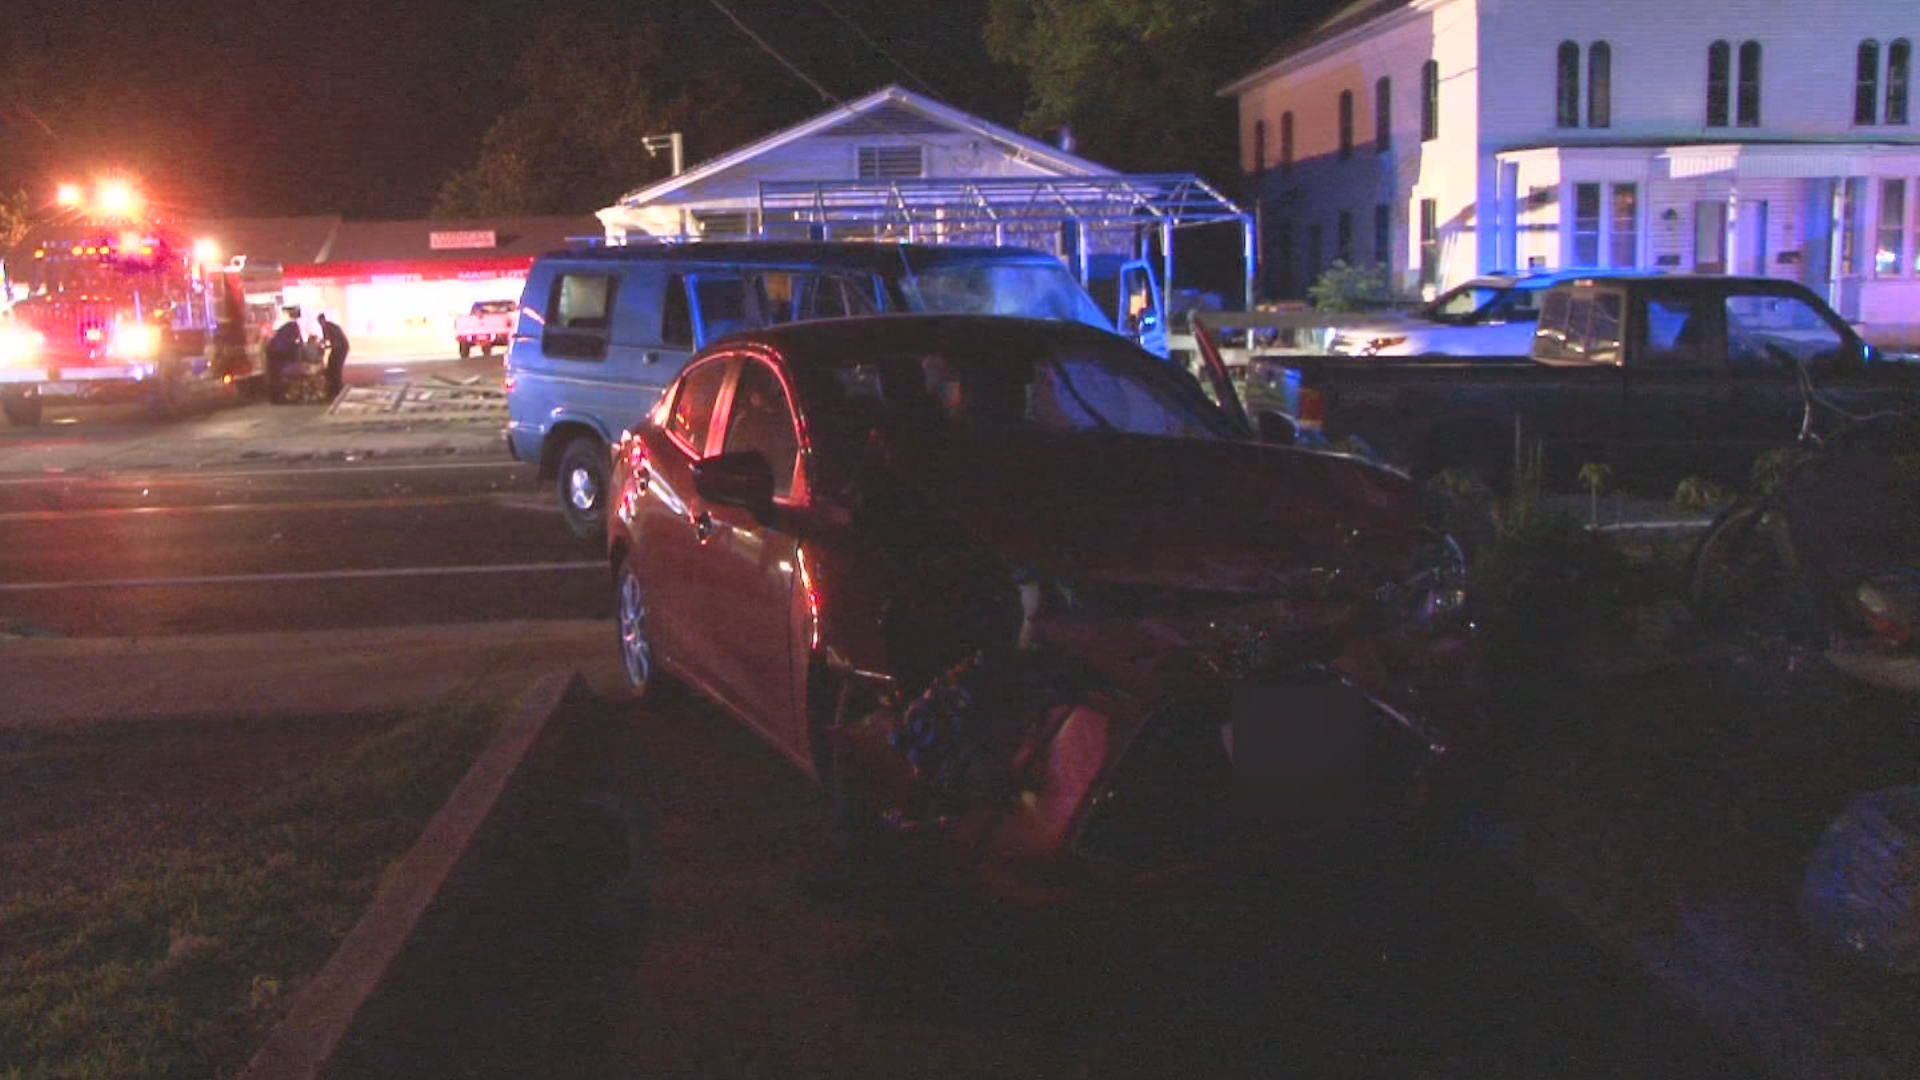 Police responded to a head-on crash on Main Street in Blackstone, Massachusetts, Tuesday, June 20, 2018. (WJAR)